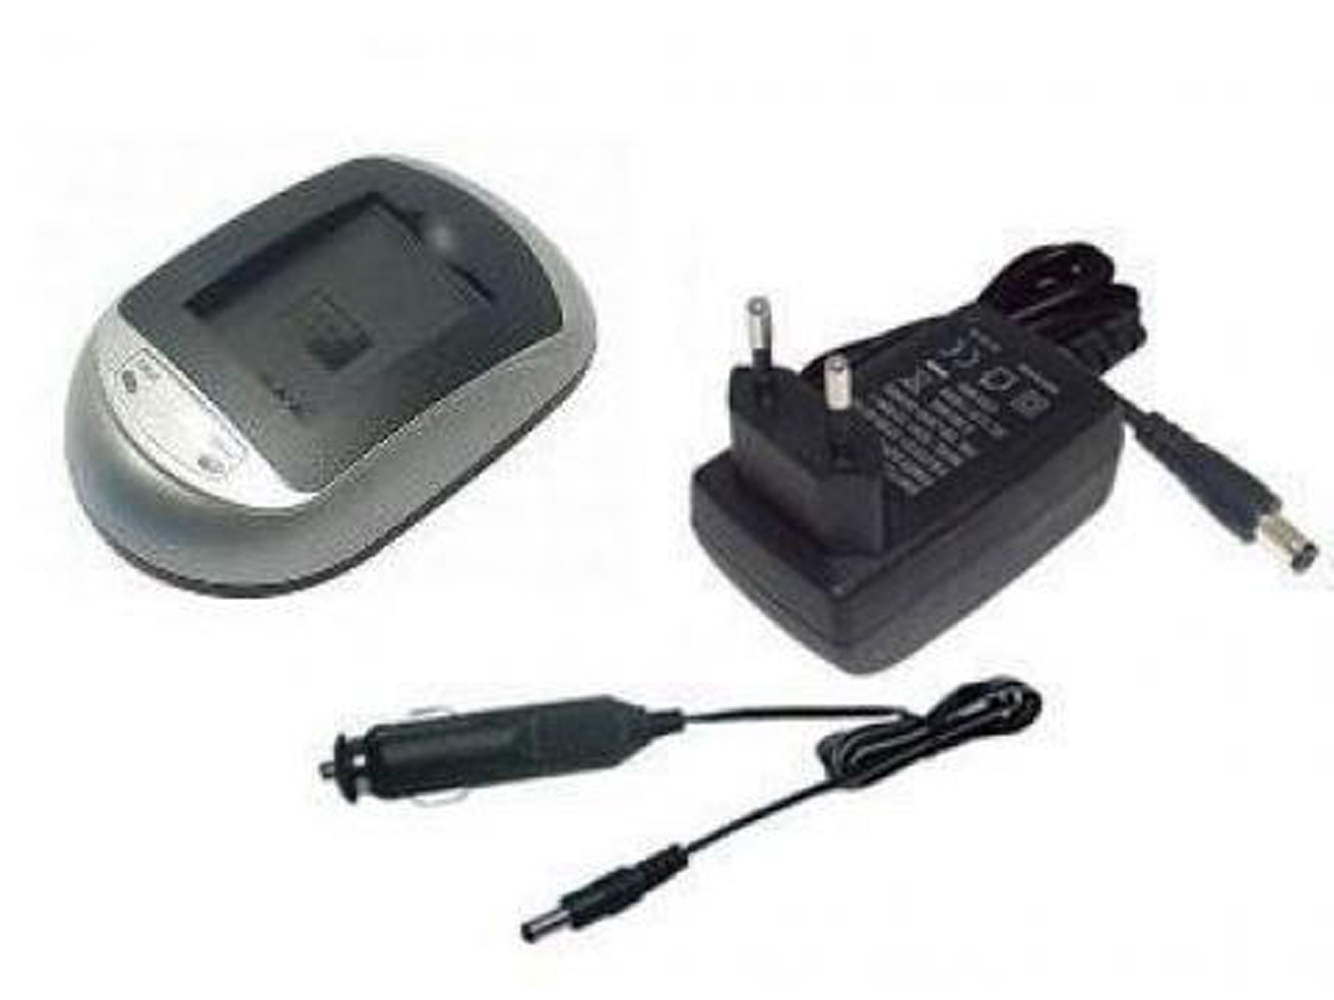 Battery Charger for SAMSUNG SLB-0837(B), SLB-0837B